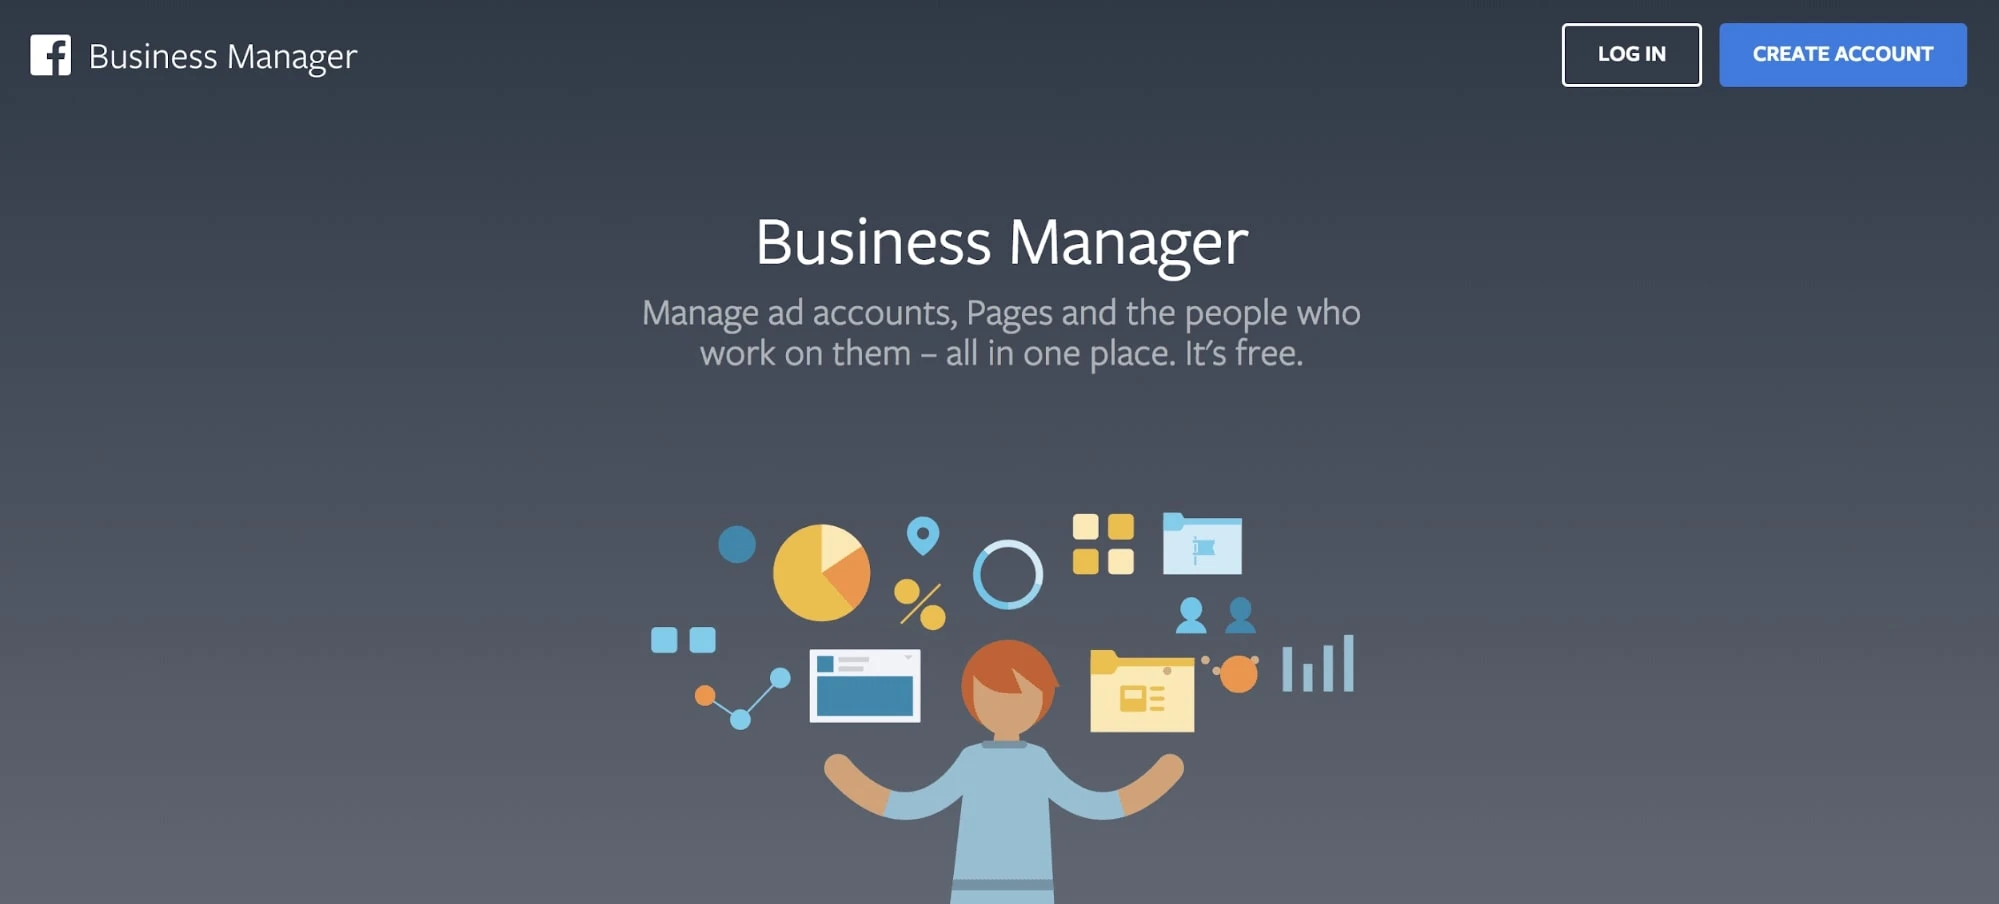 Business Manager account